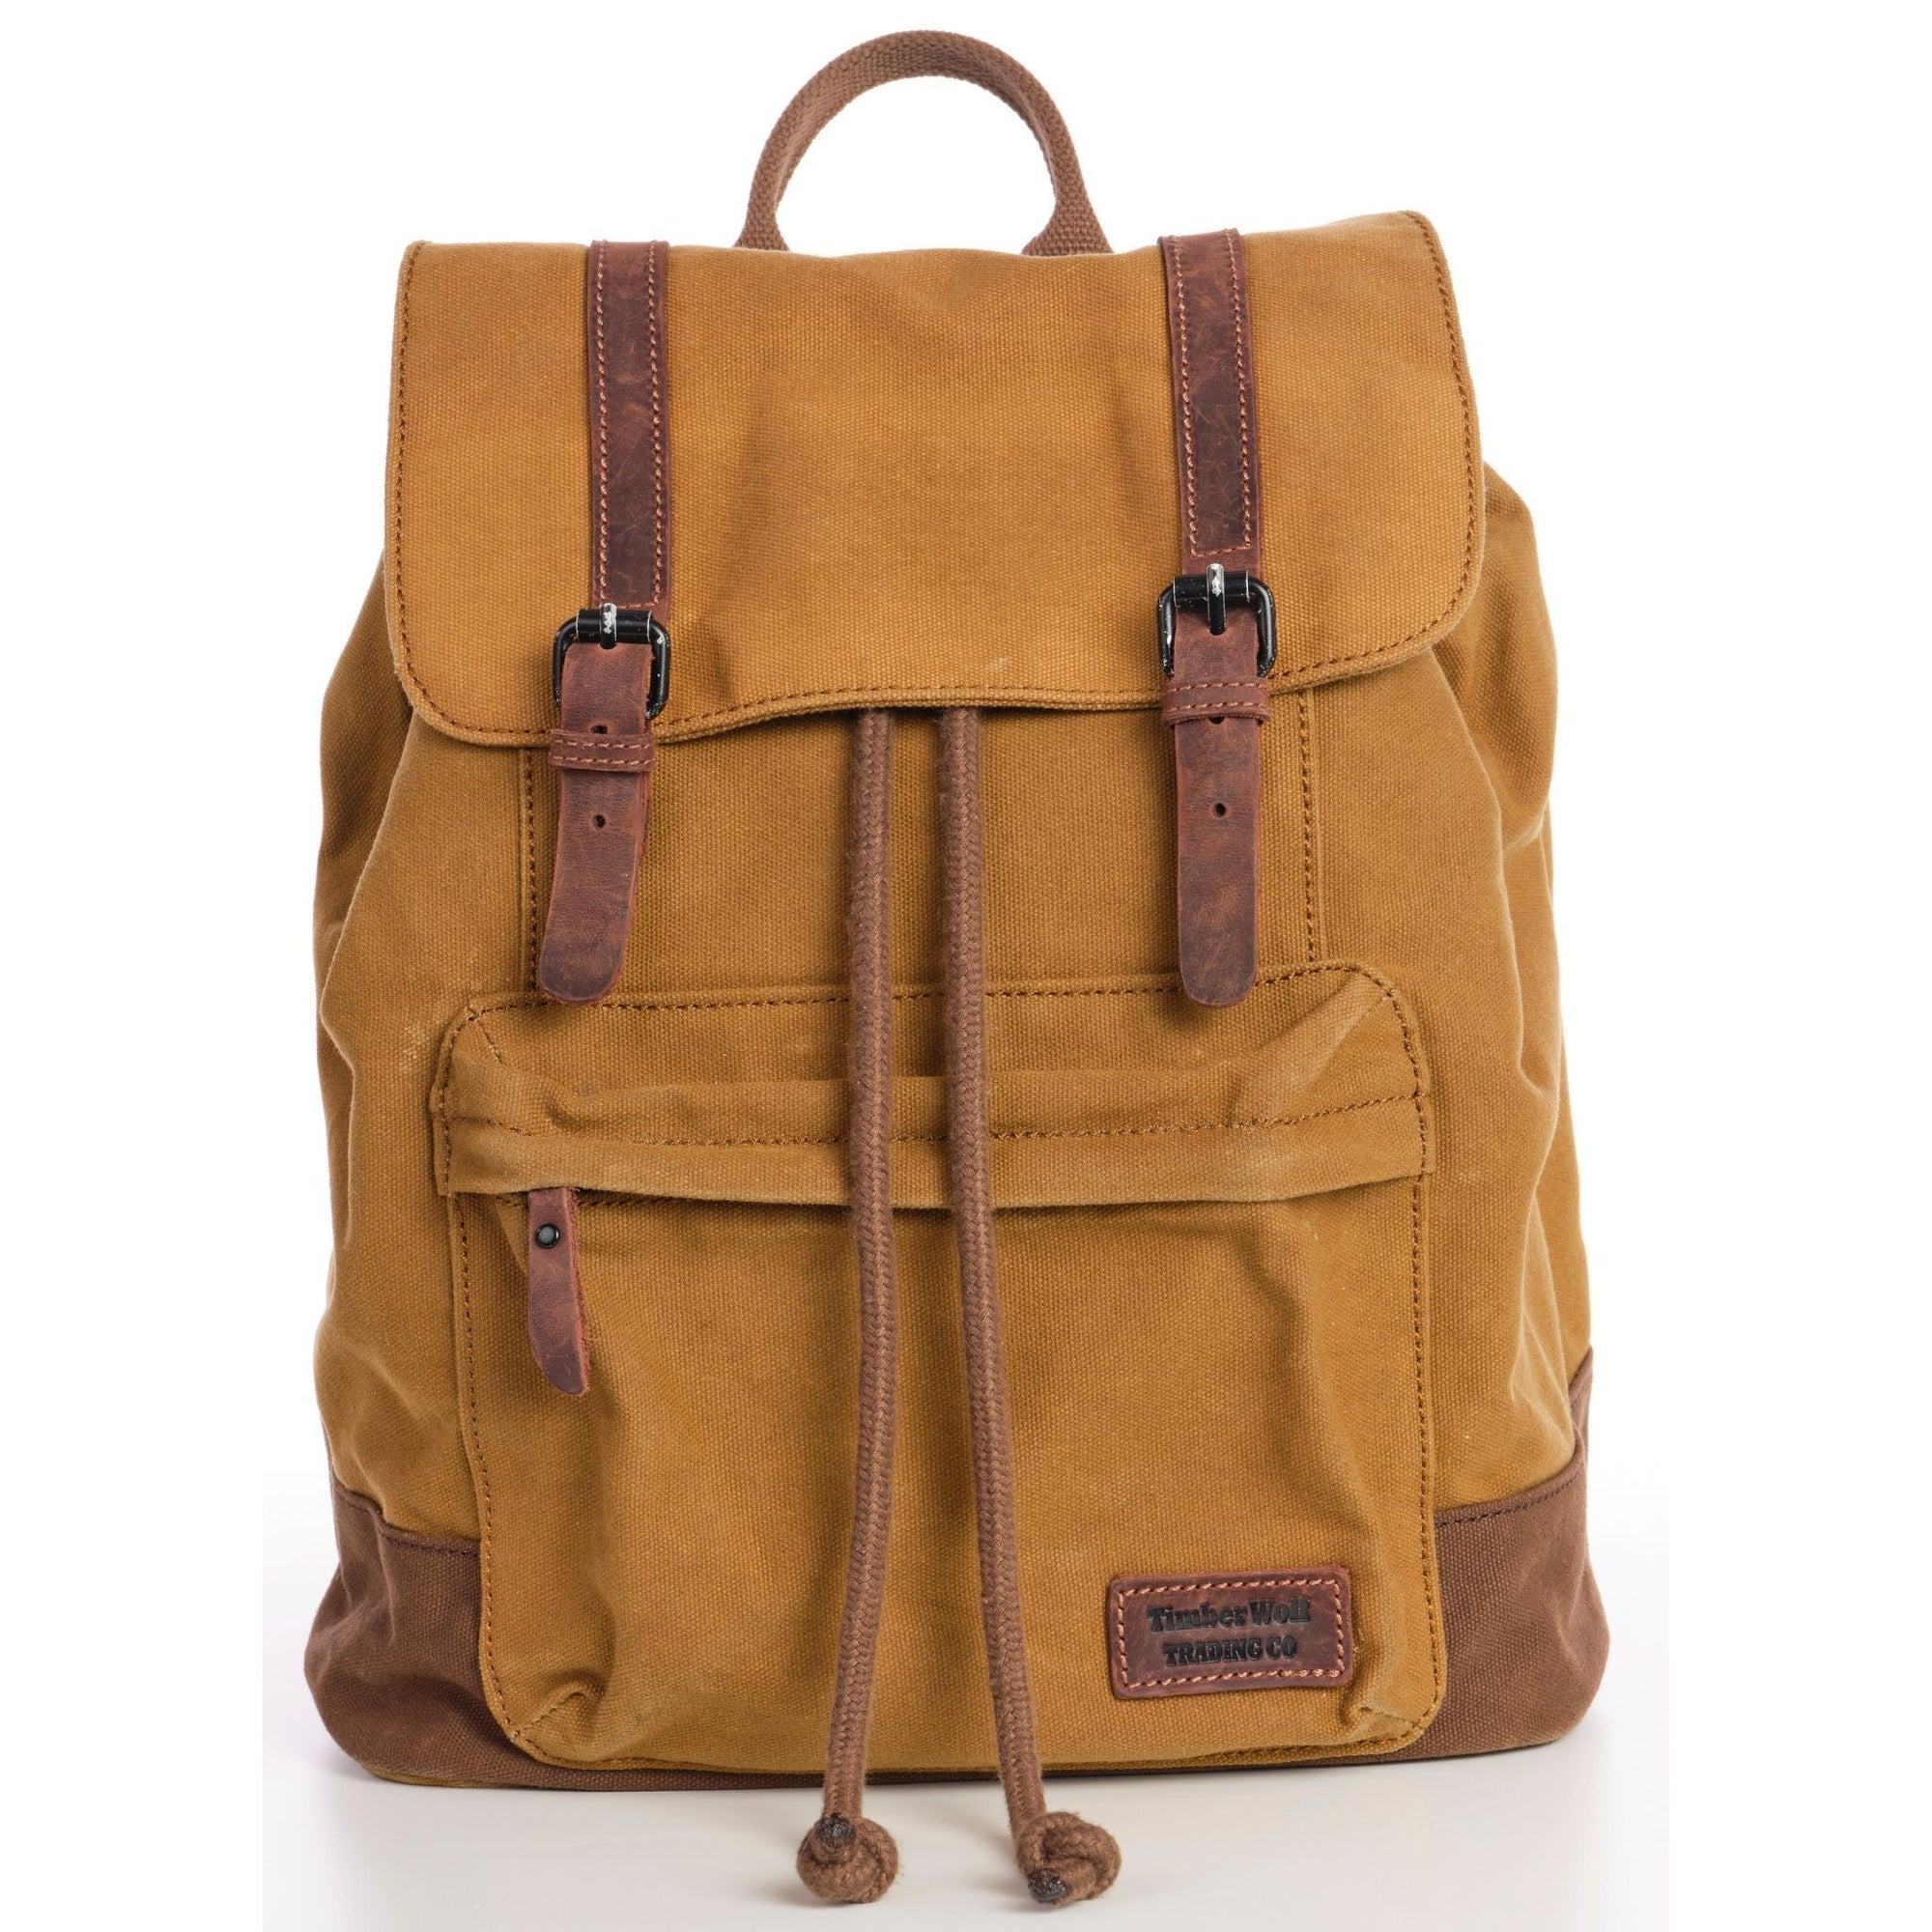 Daypack - TmberWolf Vintage backpack